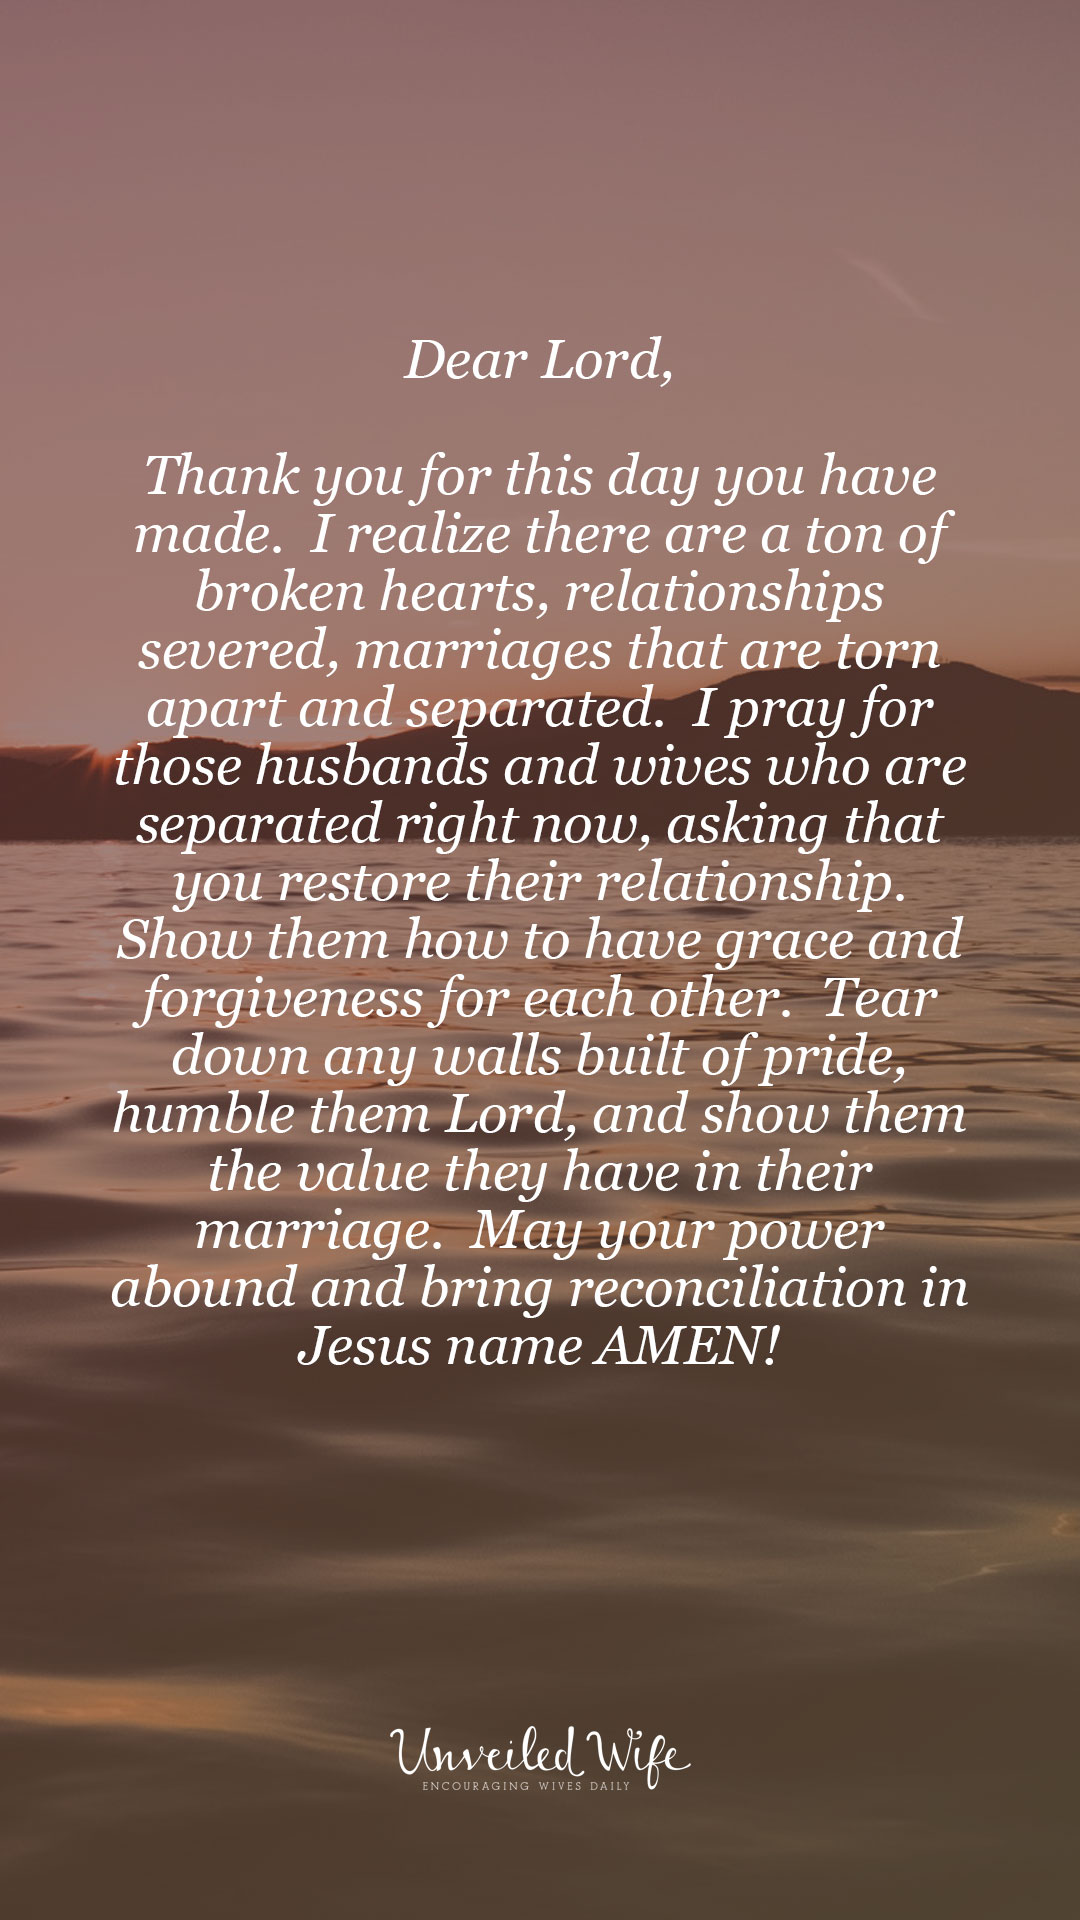 Christian Marriage Love